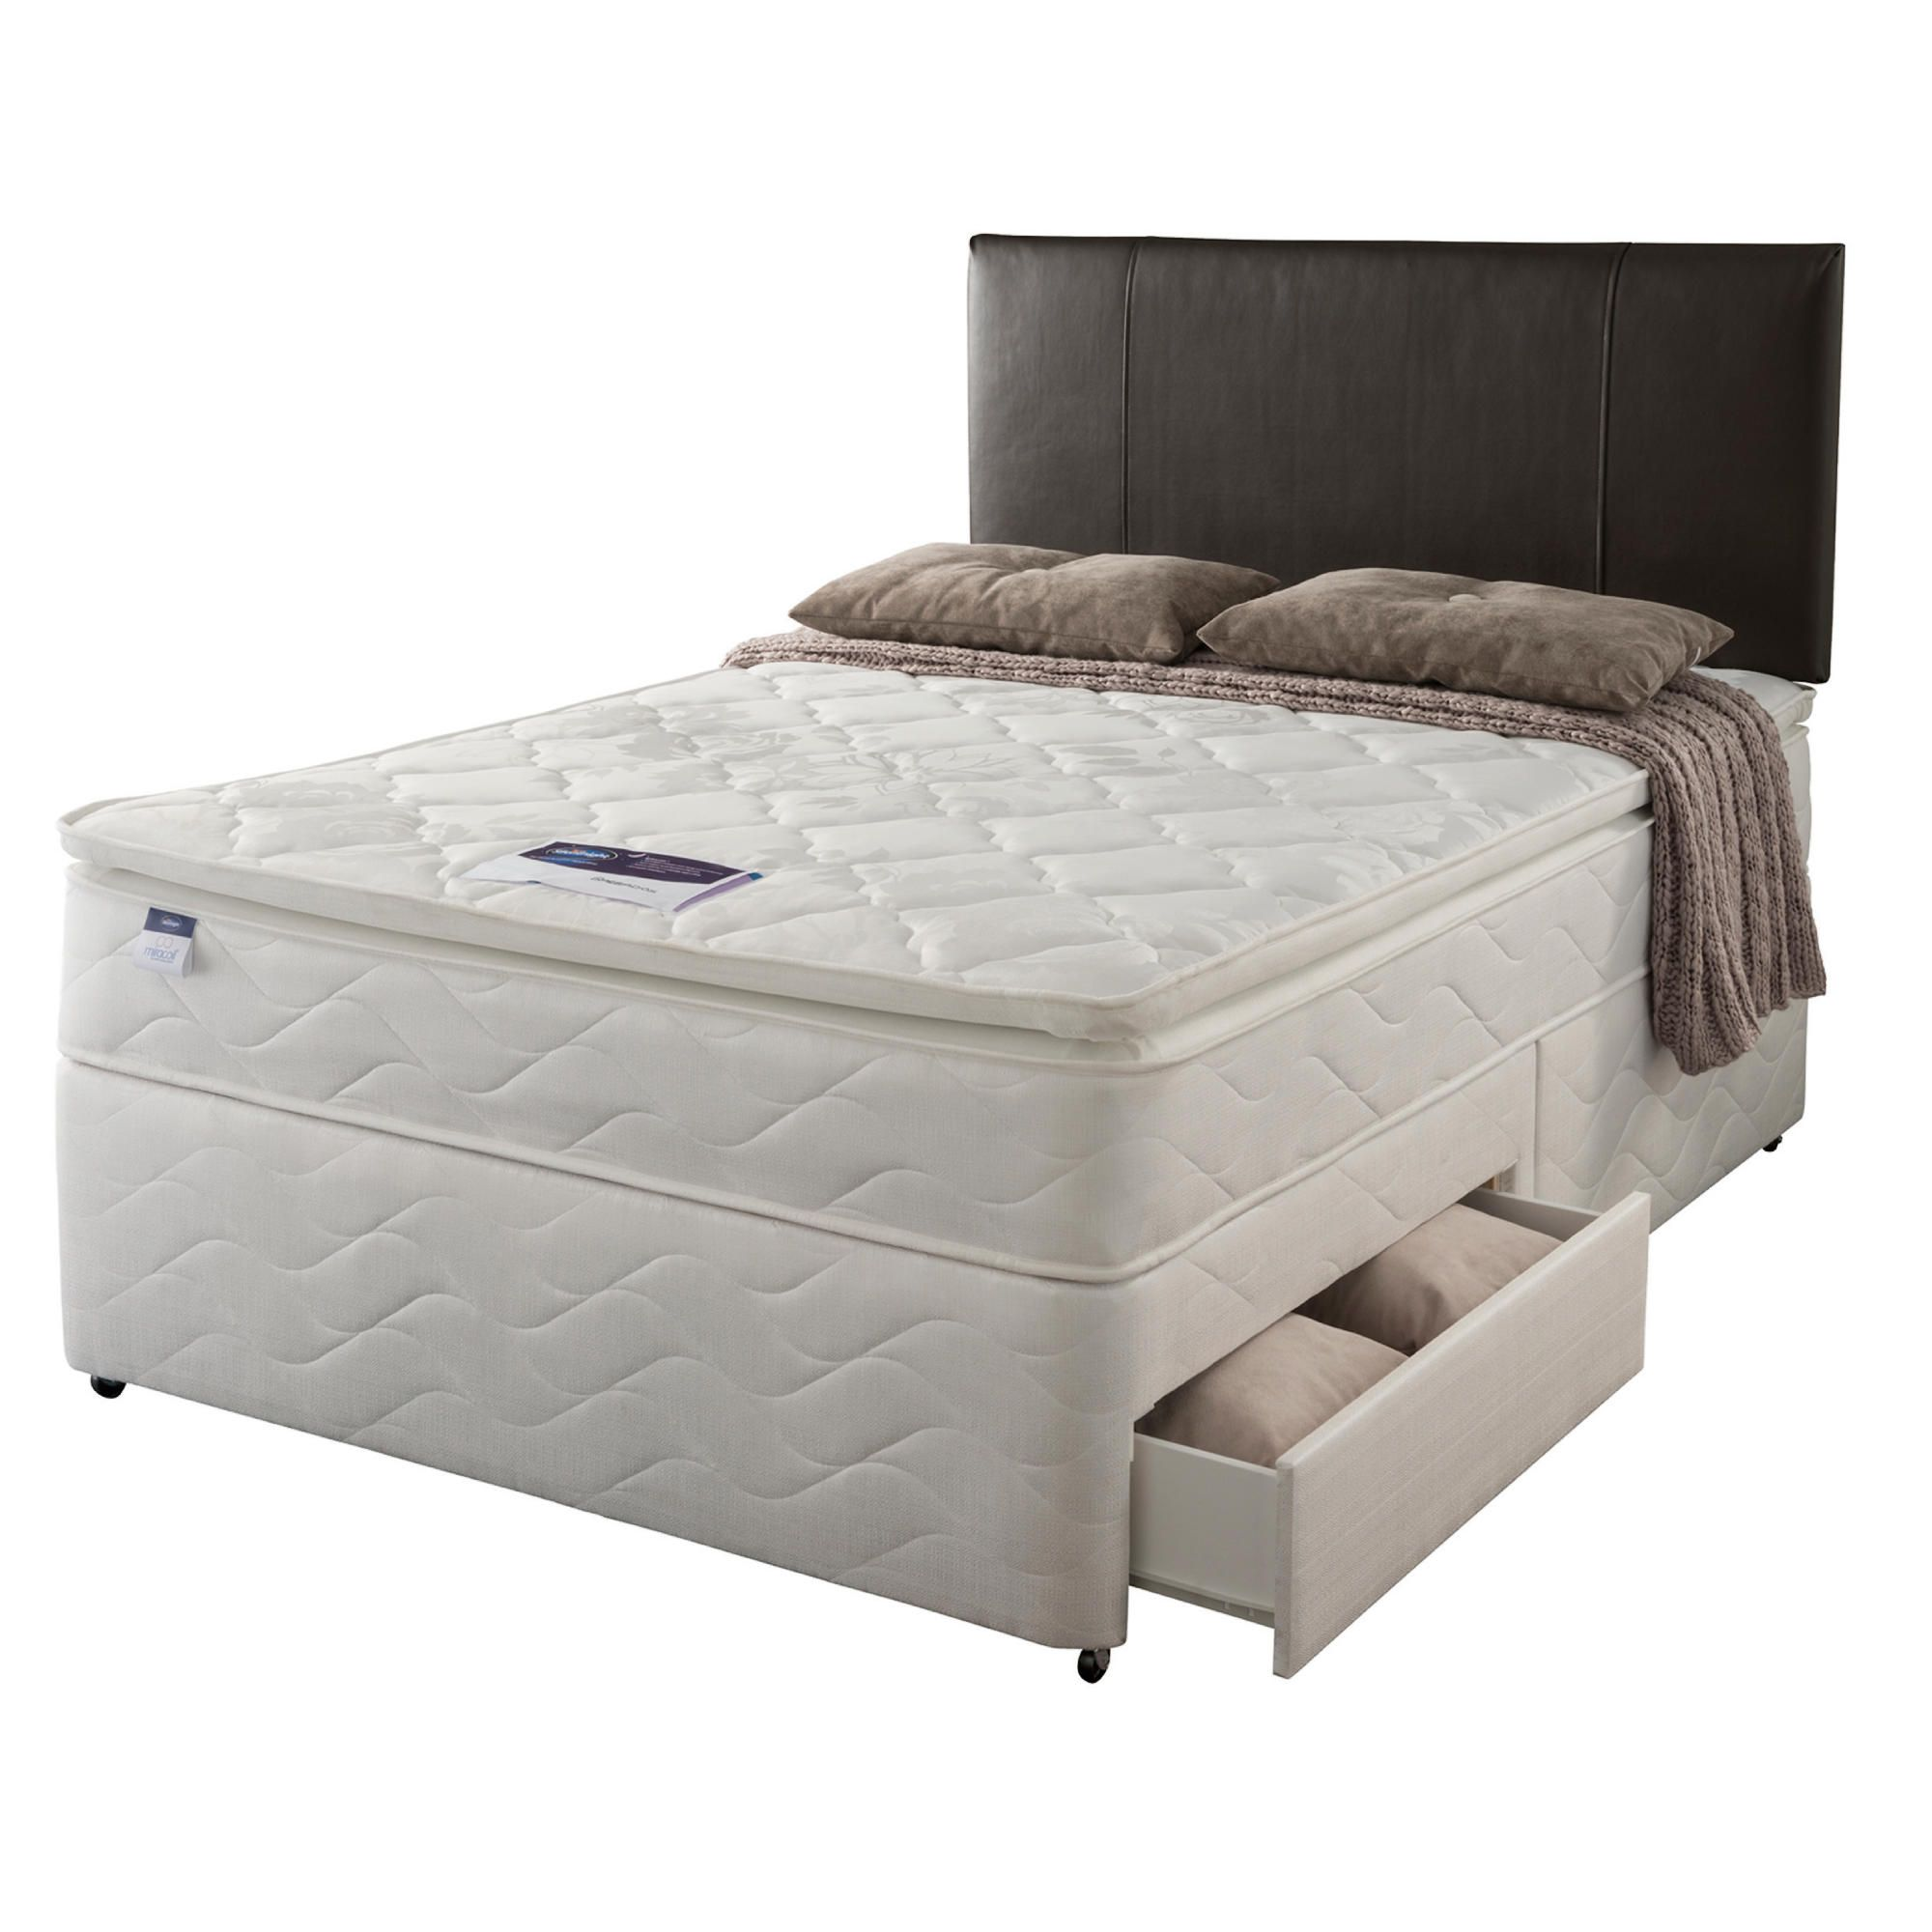 Silentnight Miracoil Pillowtop Fiji King 2 Drawer Divan set at Tesco Direct